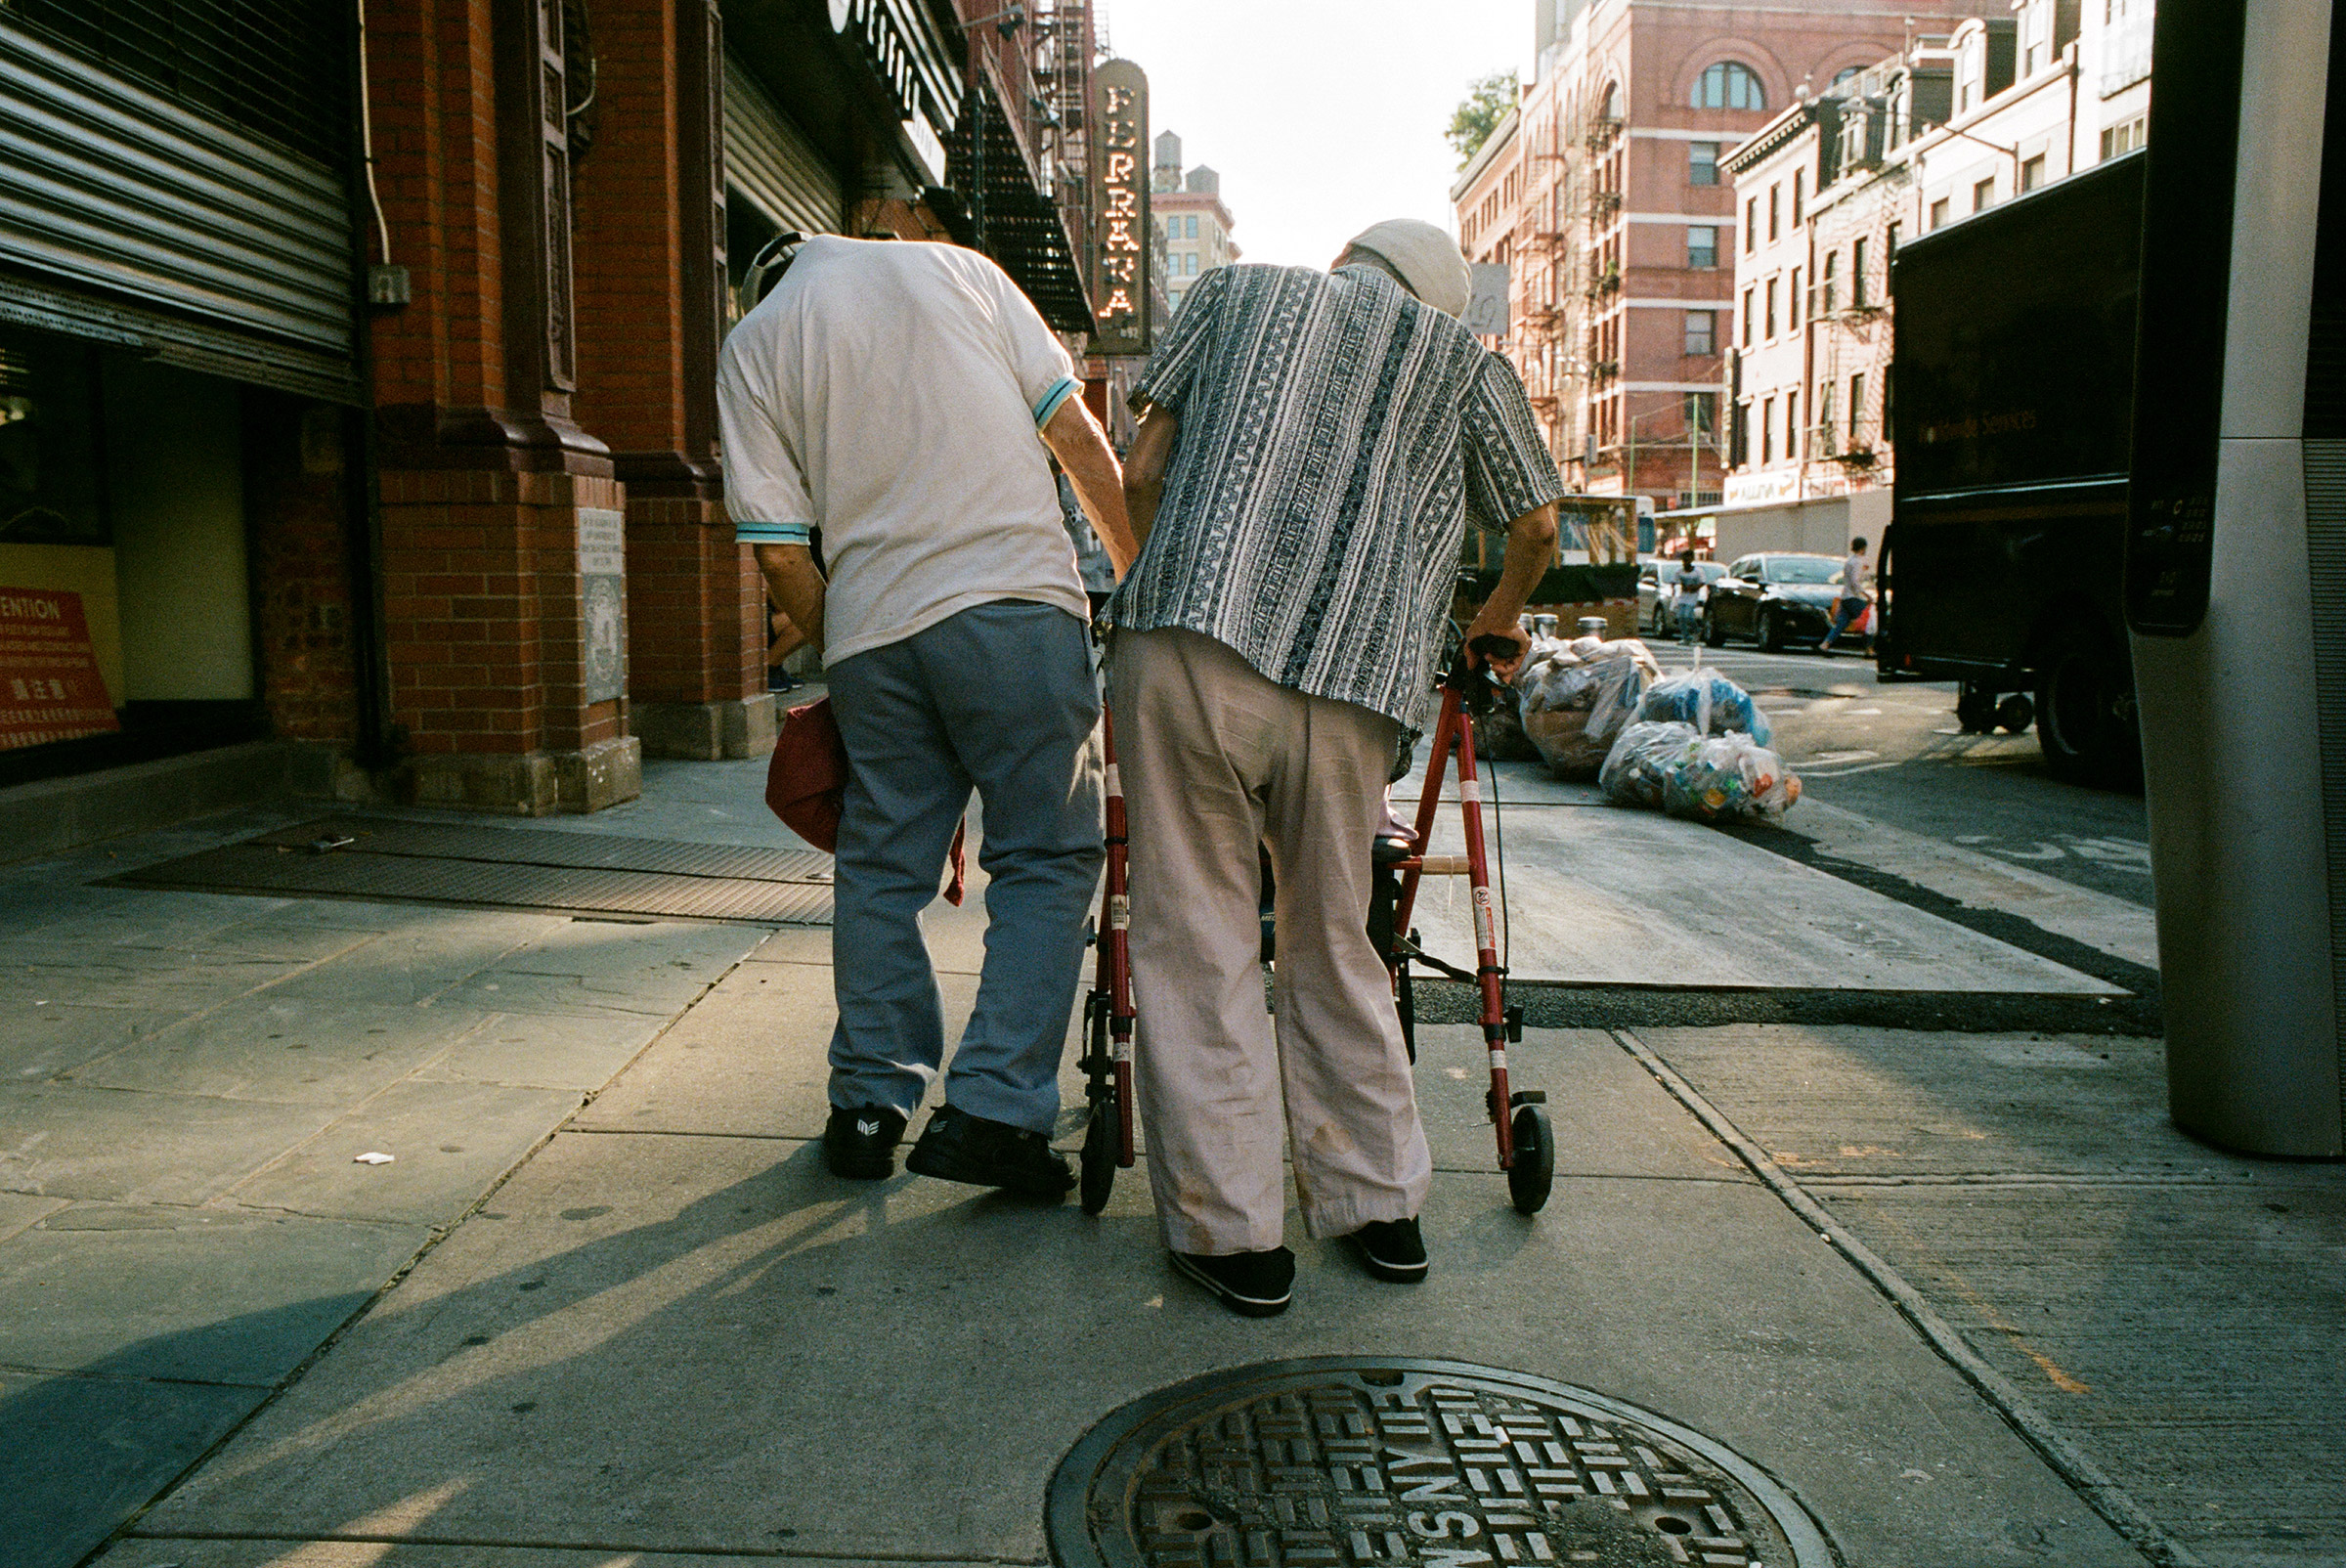 Pedestrians lean on each other in Chinatown, Aug. 27, 2021.